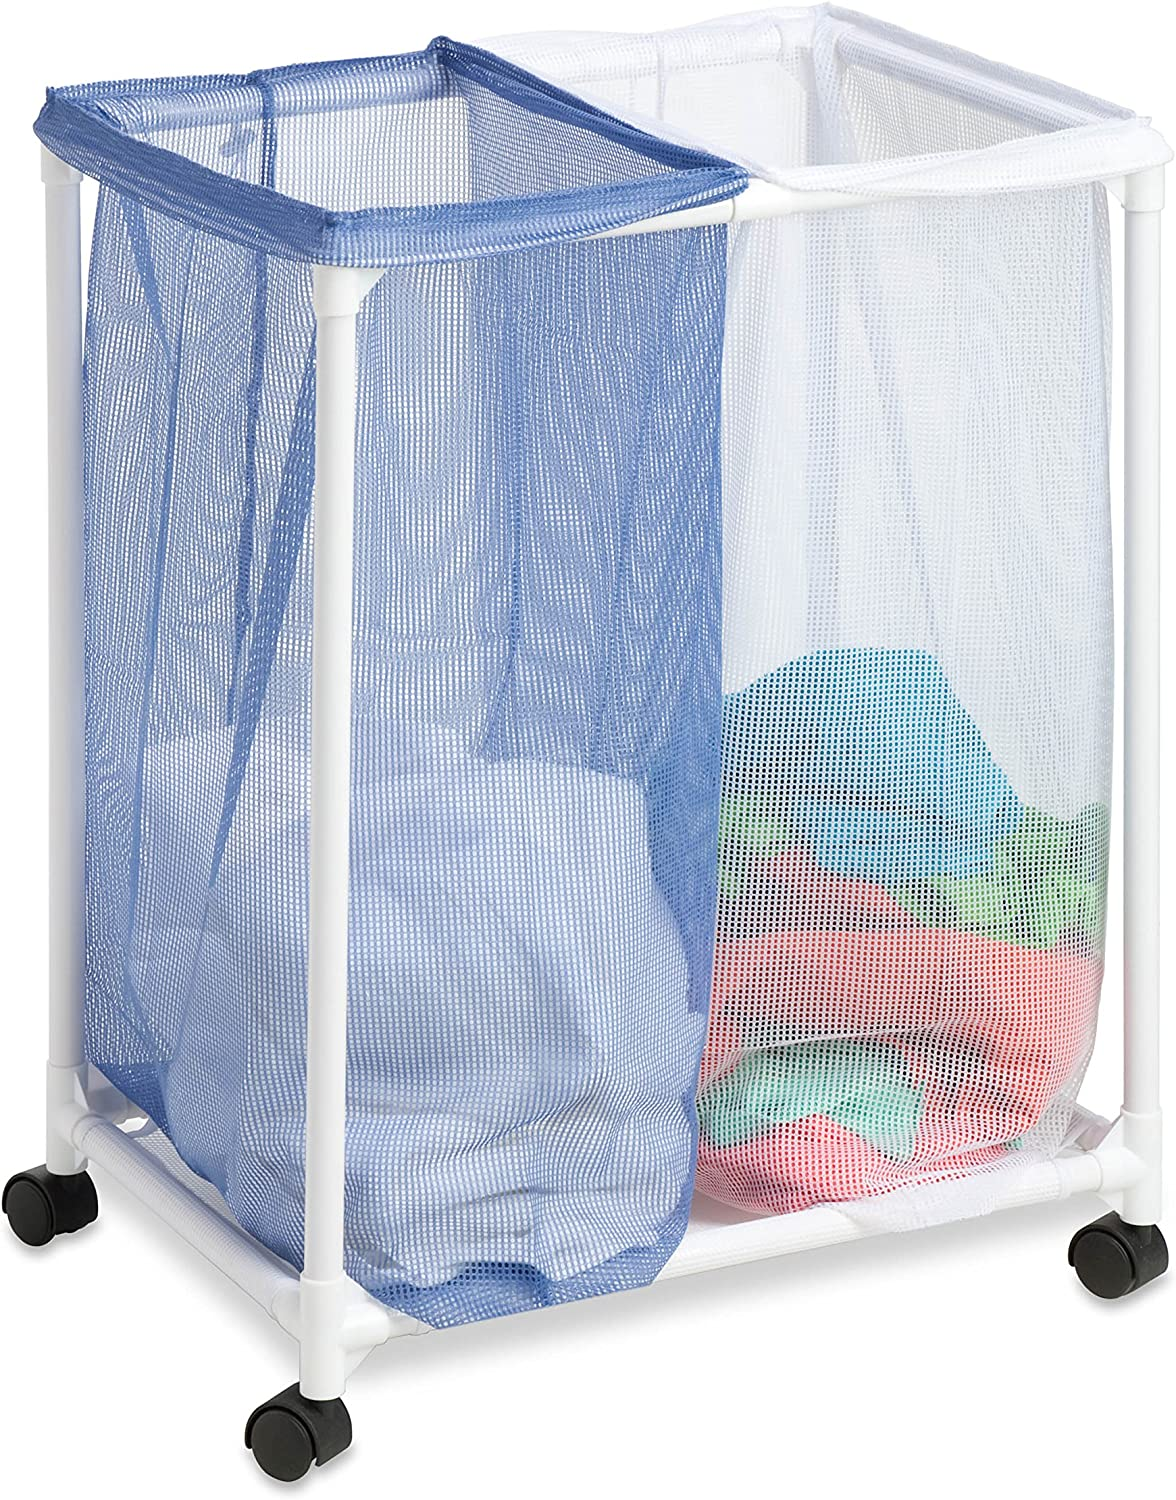 Honey-Can-Do HMP-01628 2 Bag mesh Laundry sorter, White/Blue